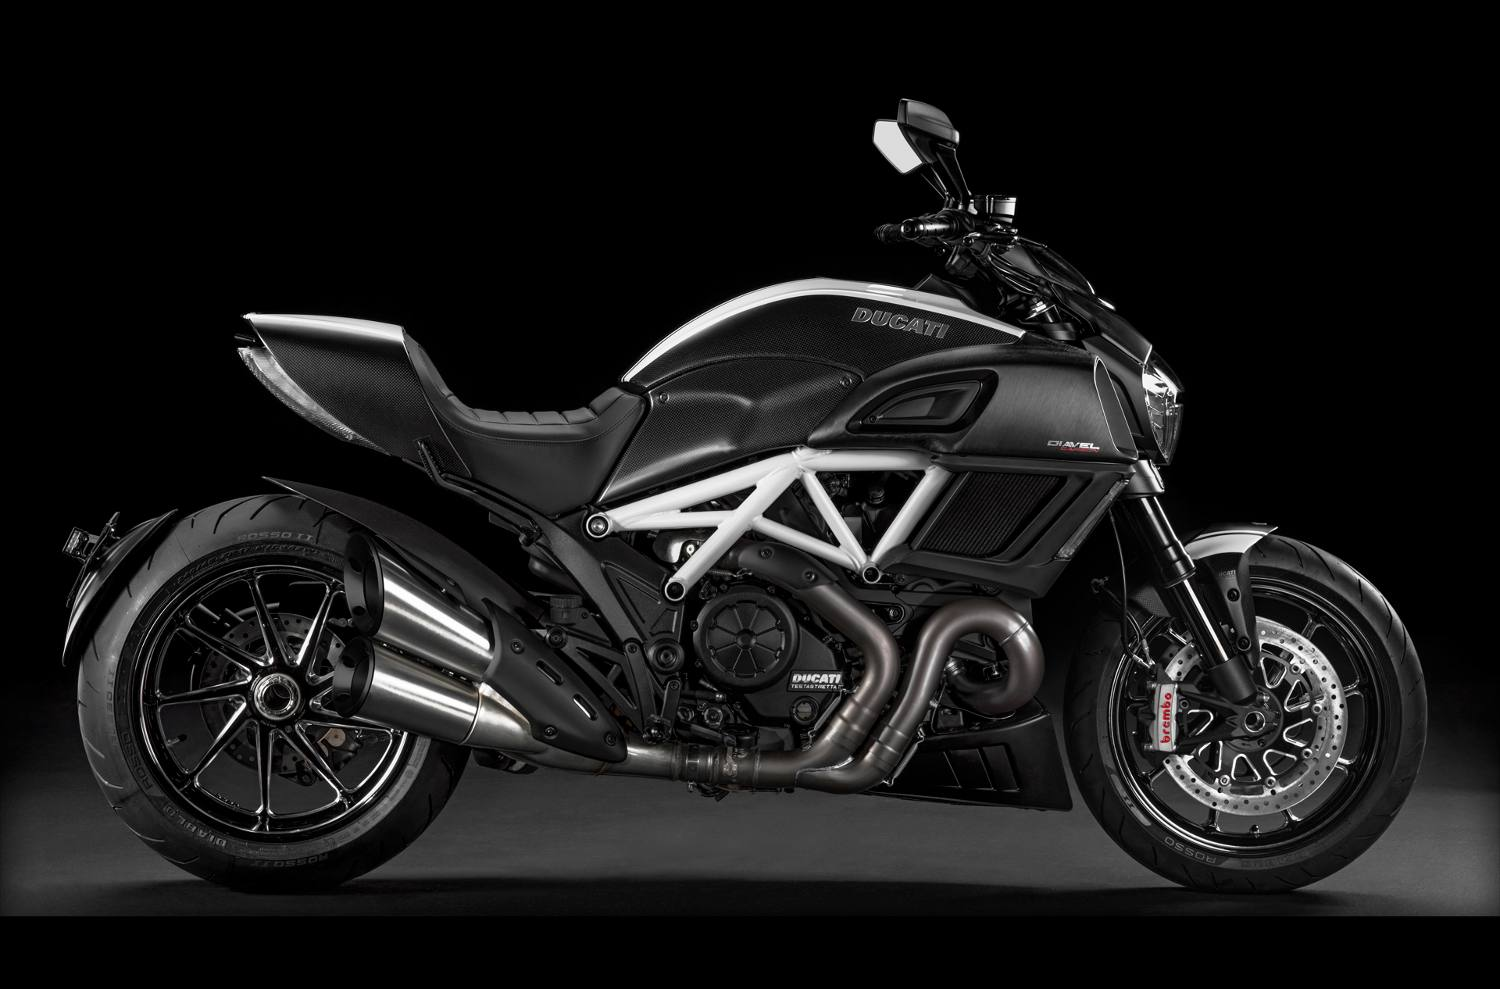 2015 Ducati Diavel Carbon Star White And Matt Carbon For Sale In